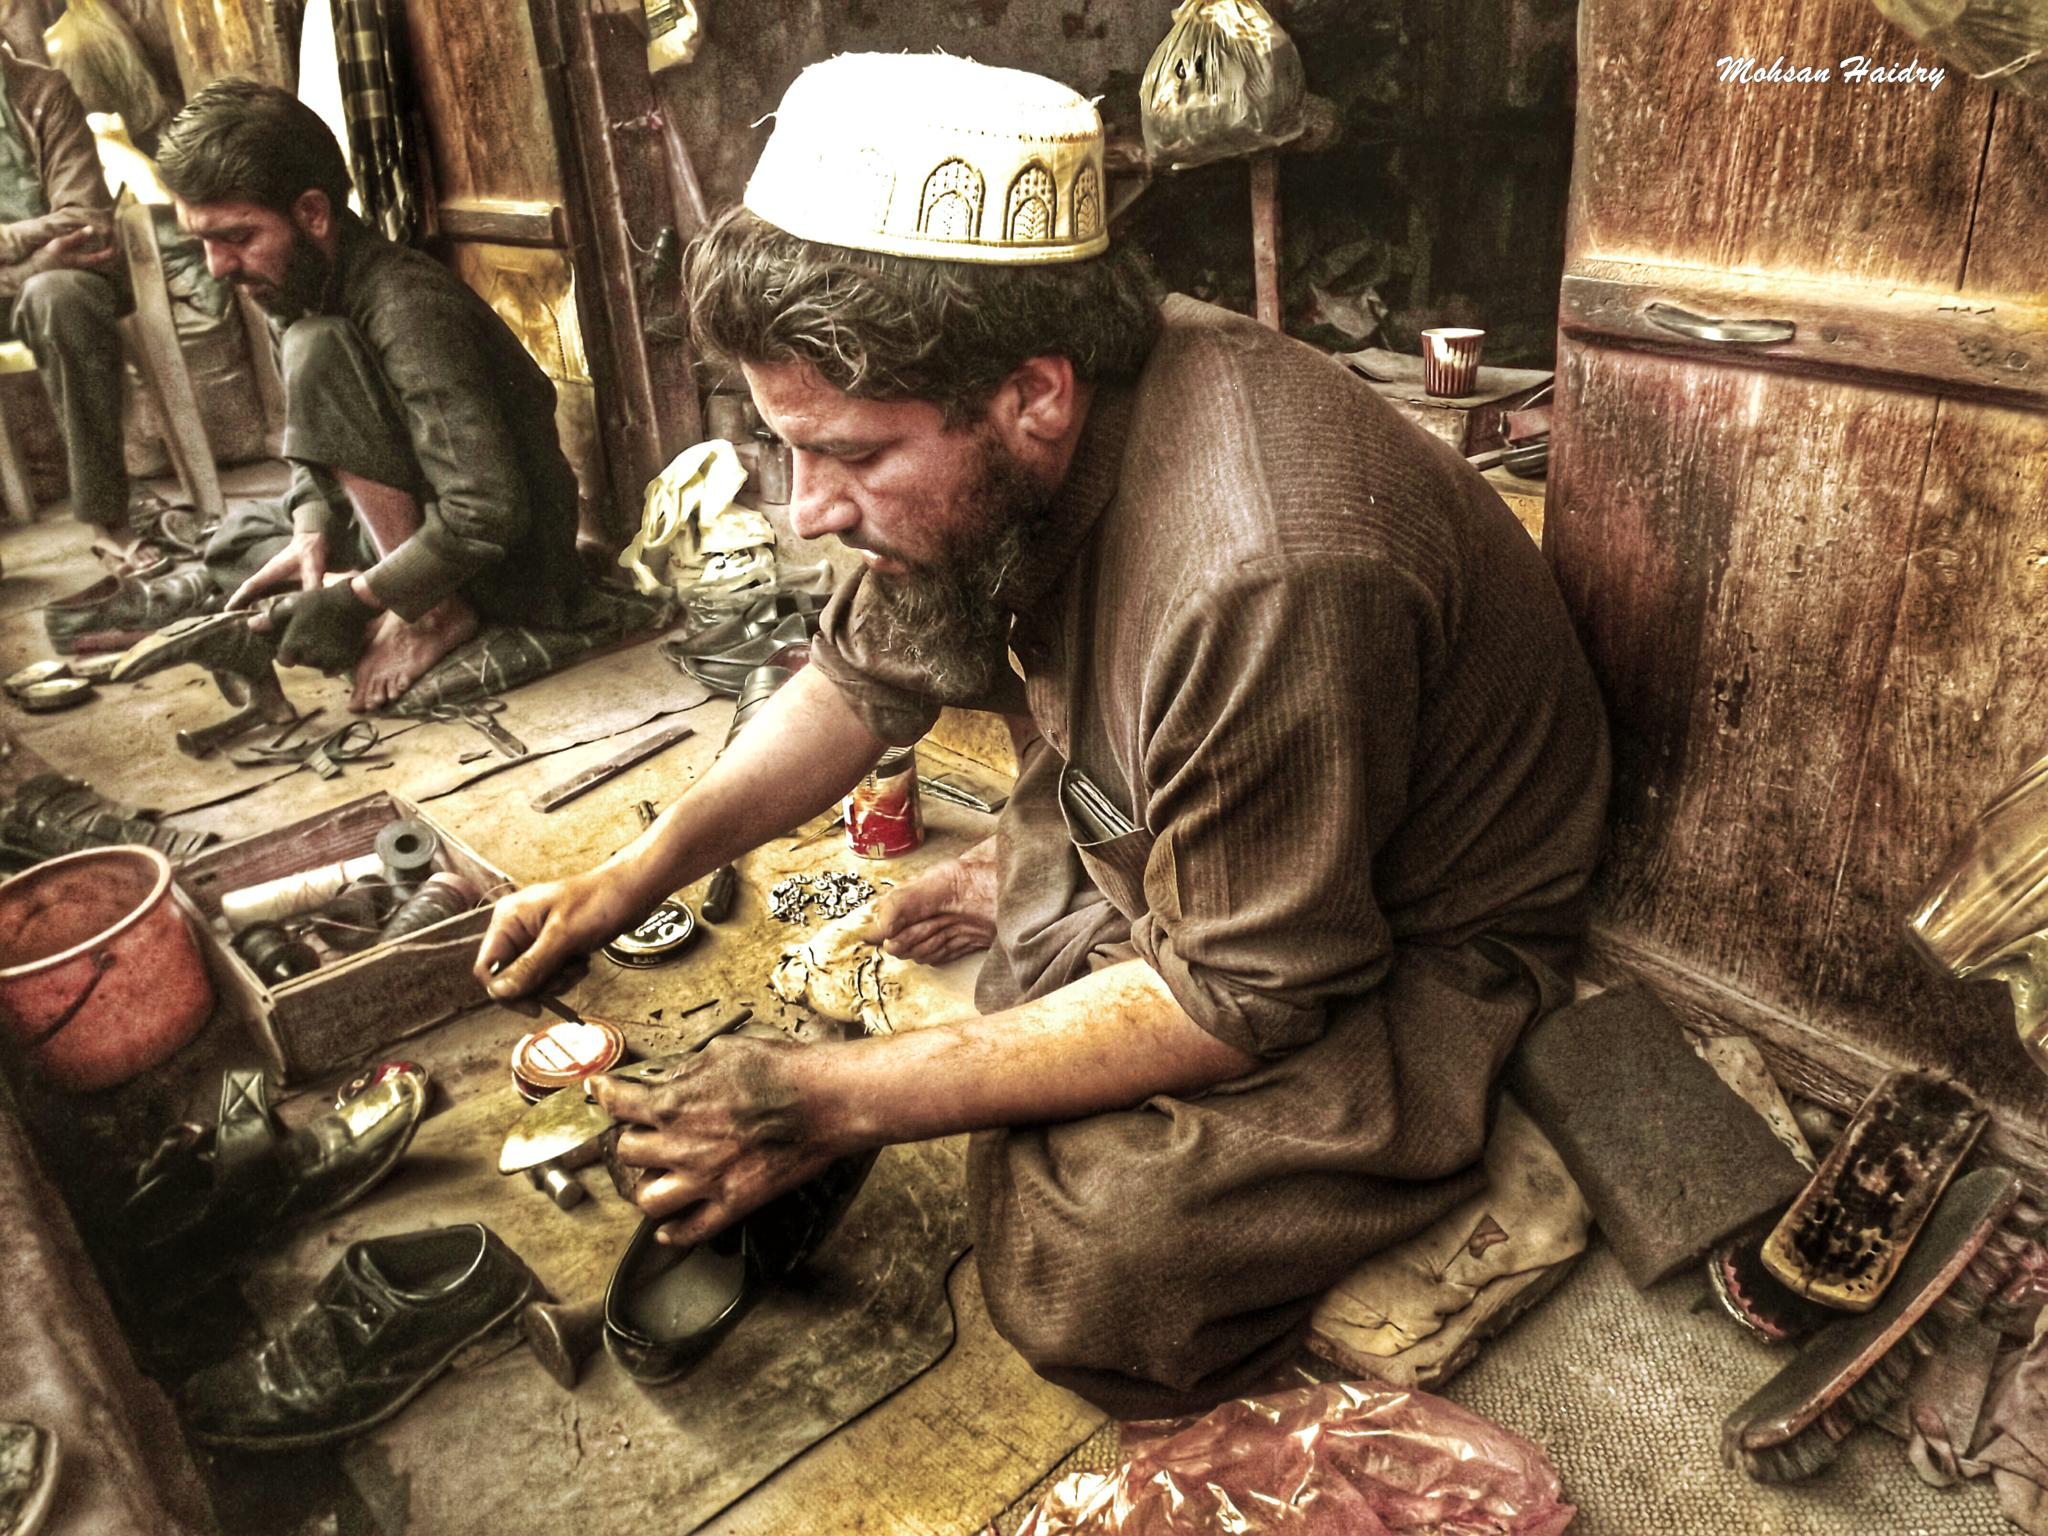 Cobbler Mend My Shoes  by Mohsan Haidry